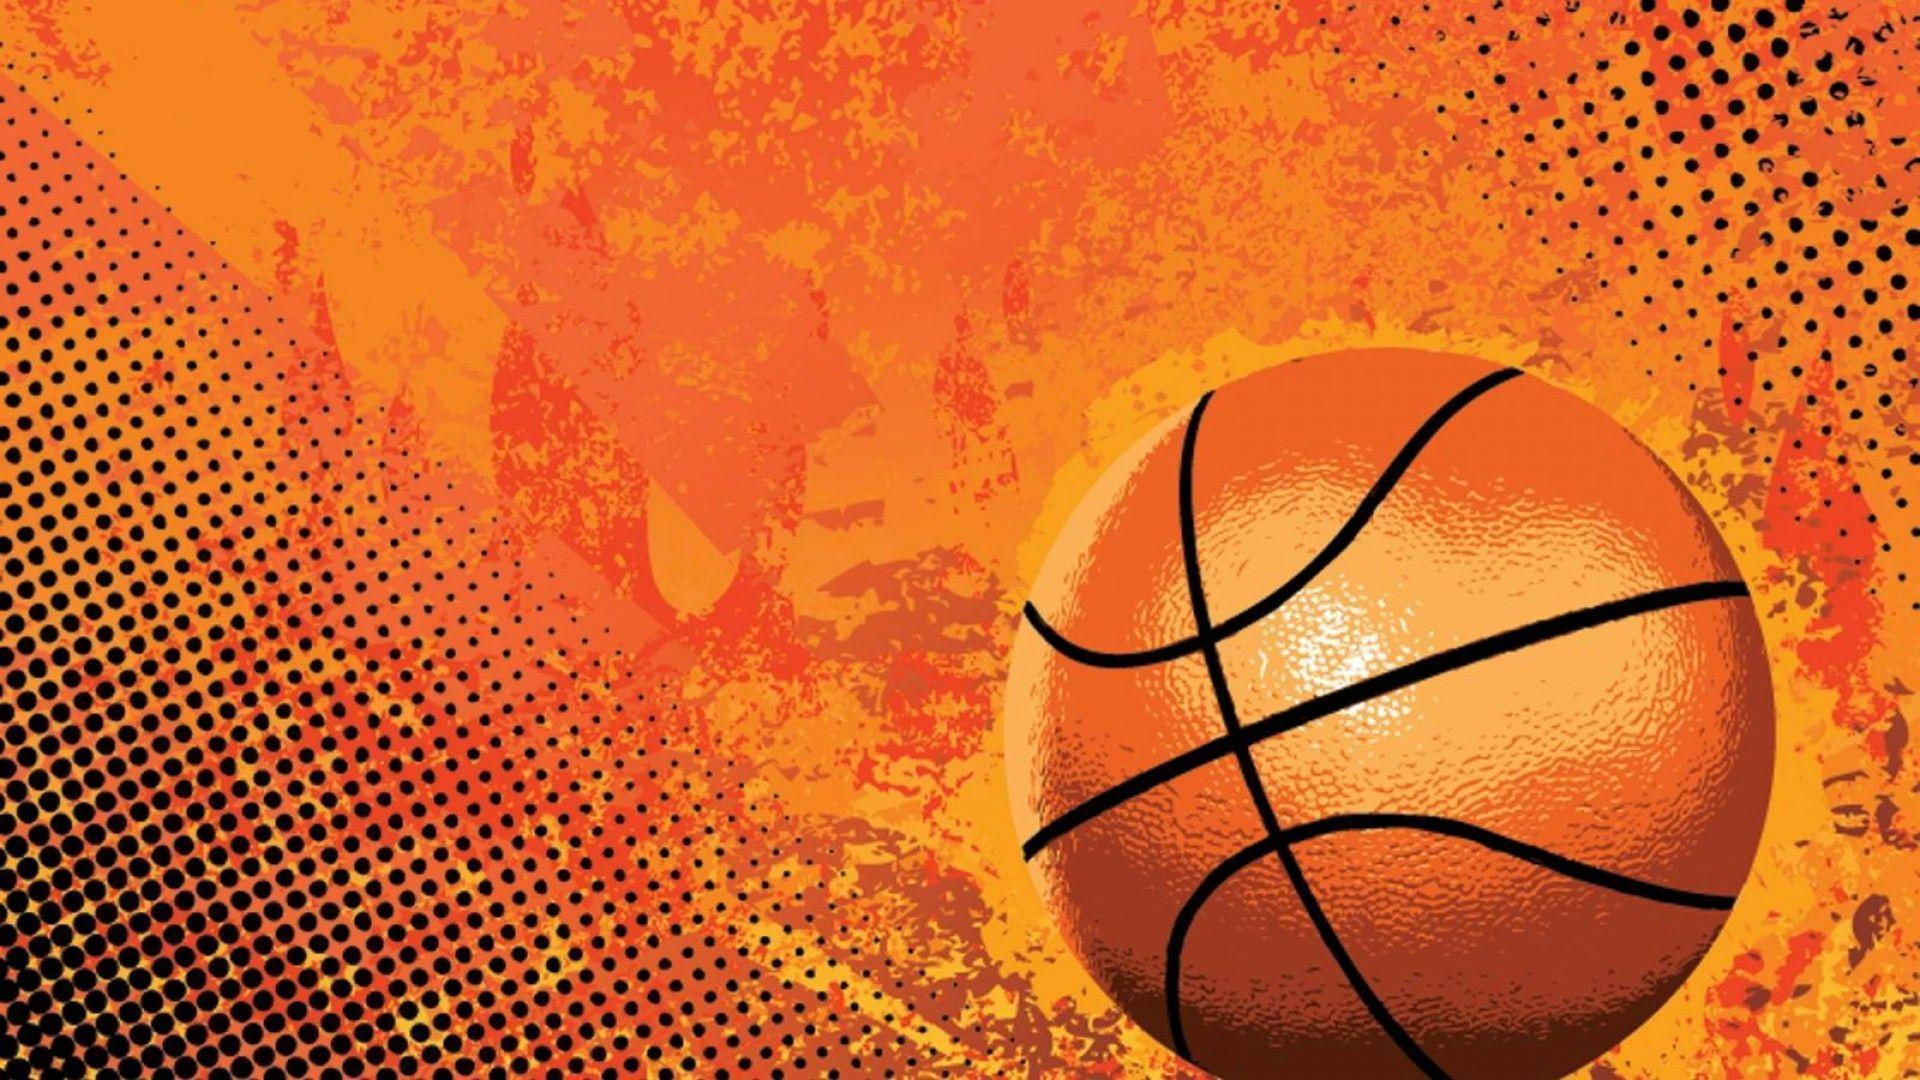 Sport Wallpaper Basketball: Best Basketball Backgrounds